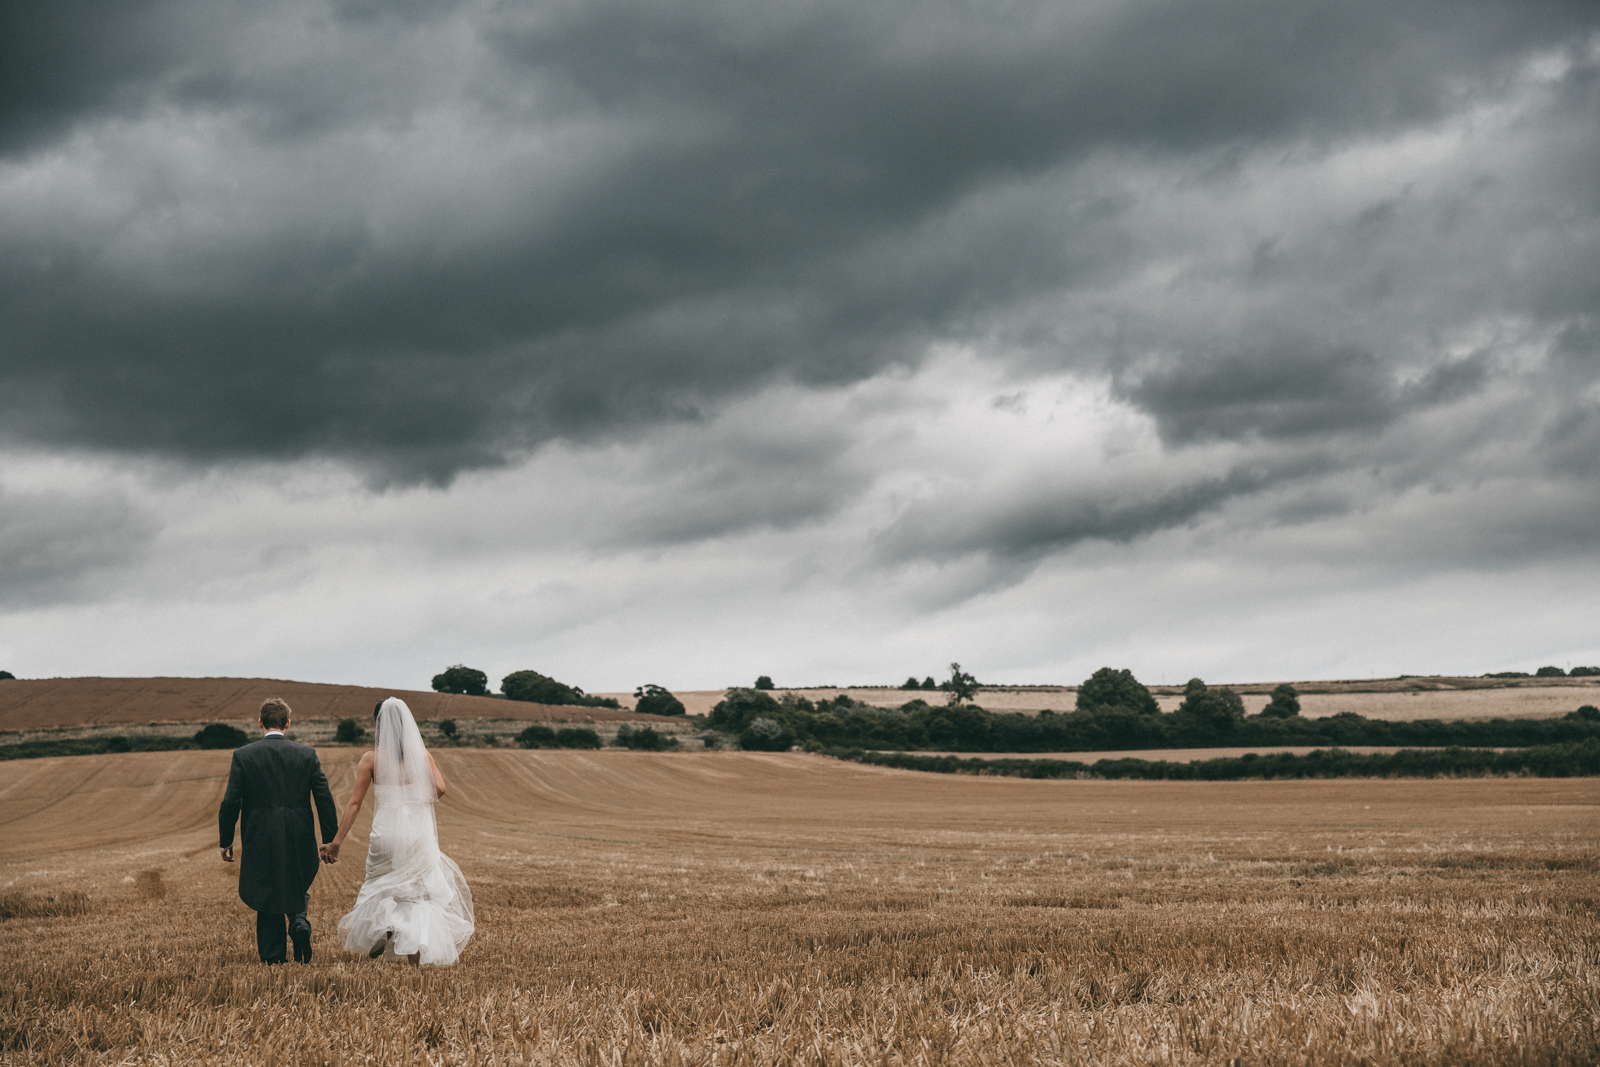 Chris Bradshaw Wedding Photography - Simon & Amanda Wedding Photos-63